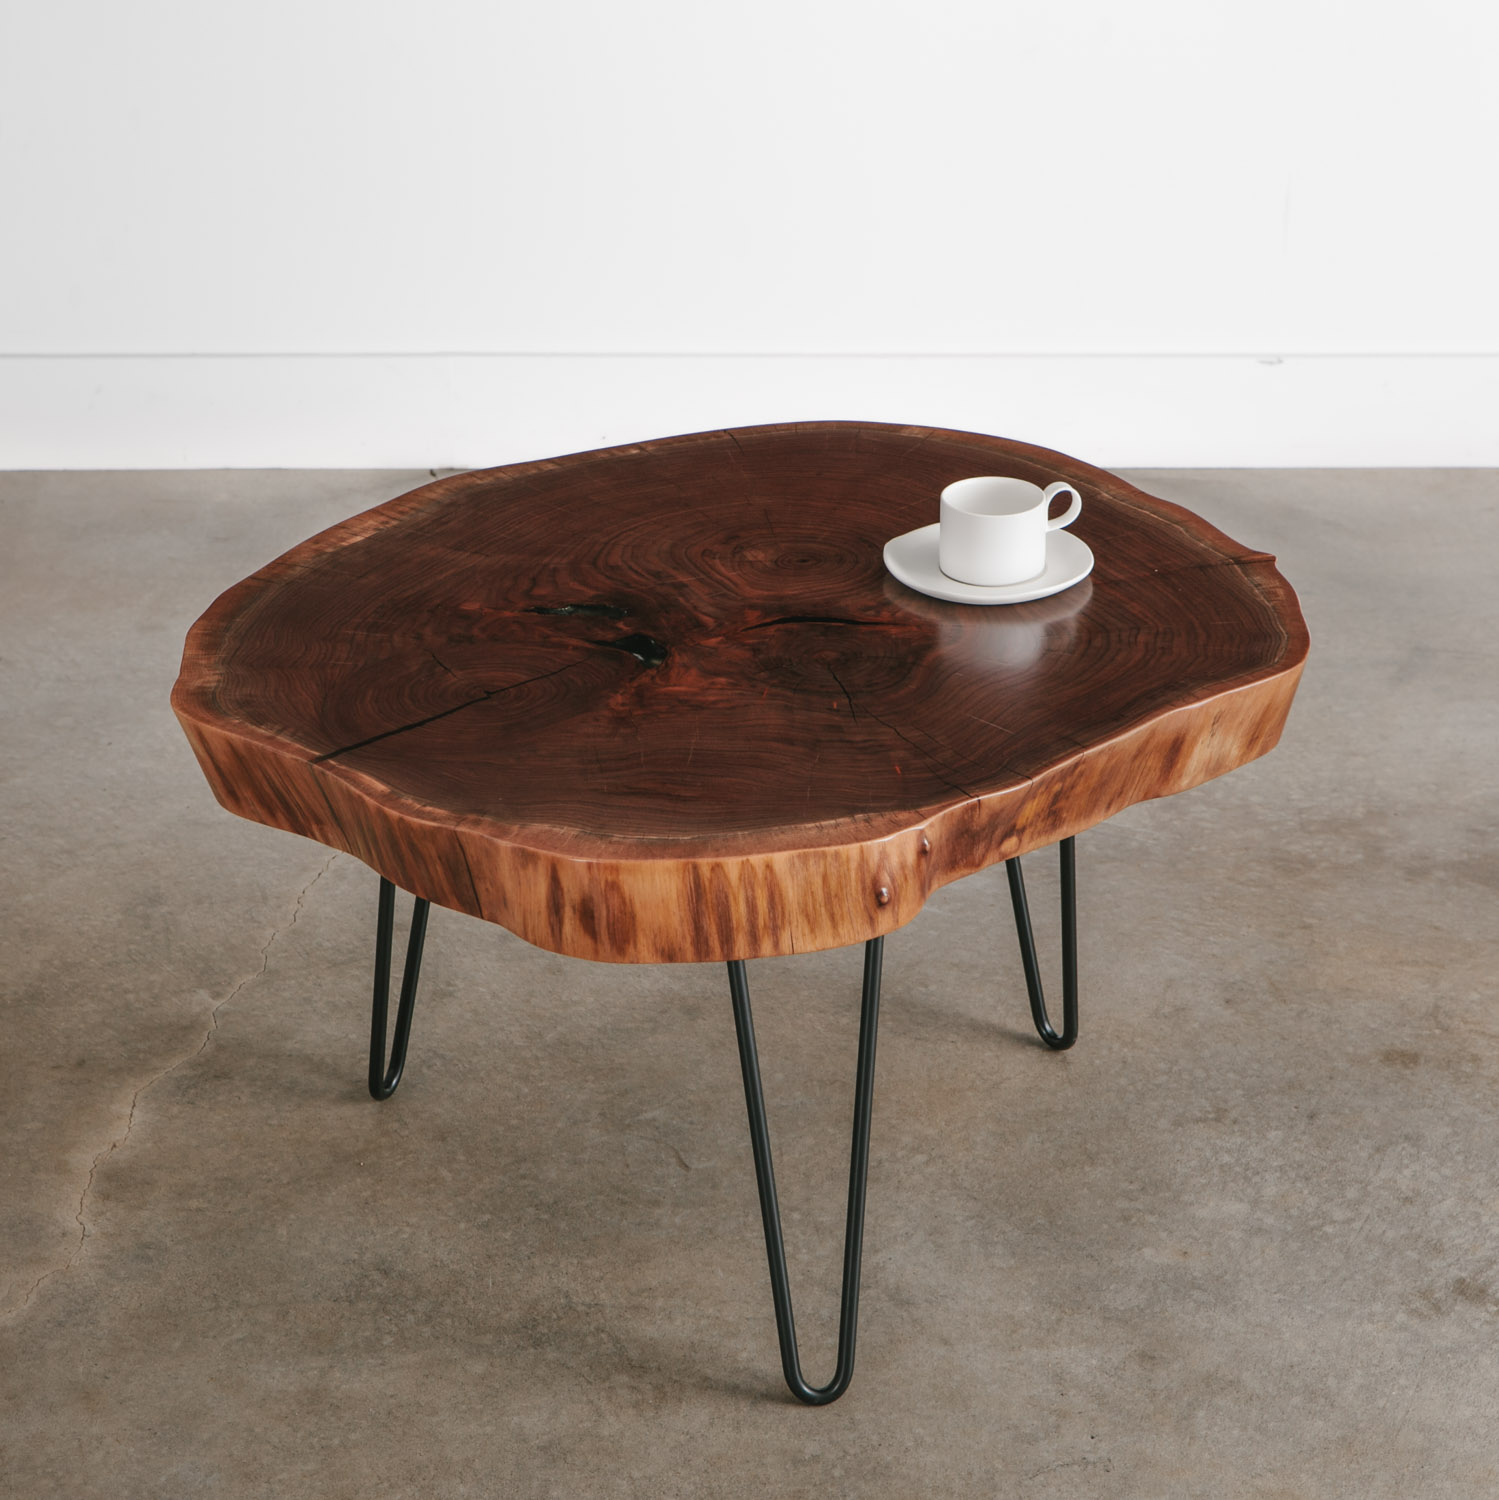 Walnut Coffee Table No 239 Elko Hardwoods Modern Live Edge Furniture Dining Coffee Tables Desks Benches